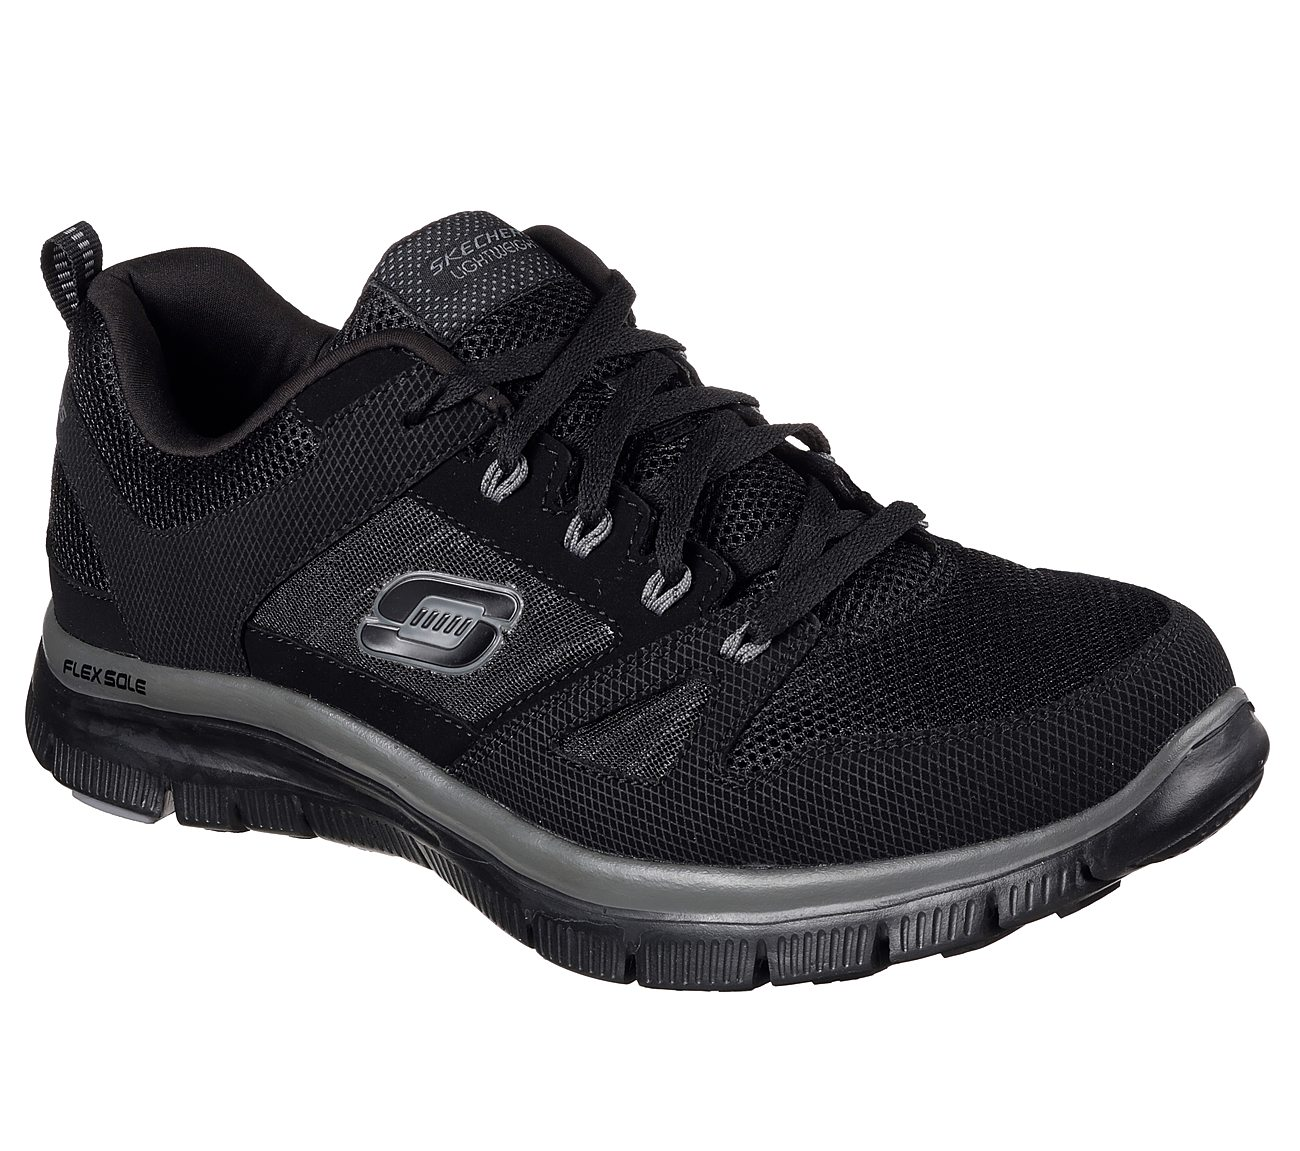 Sketchers sport women sneakers athletic shoes size 9 vented lace up balck white